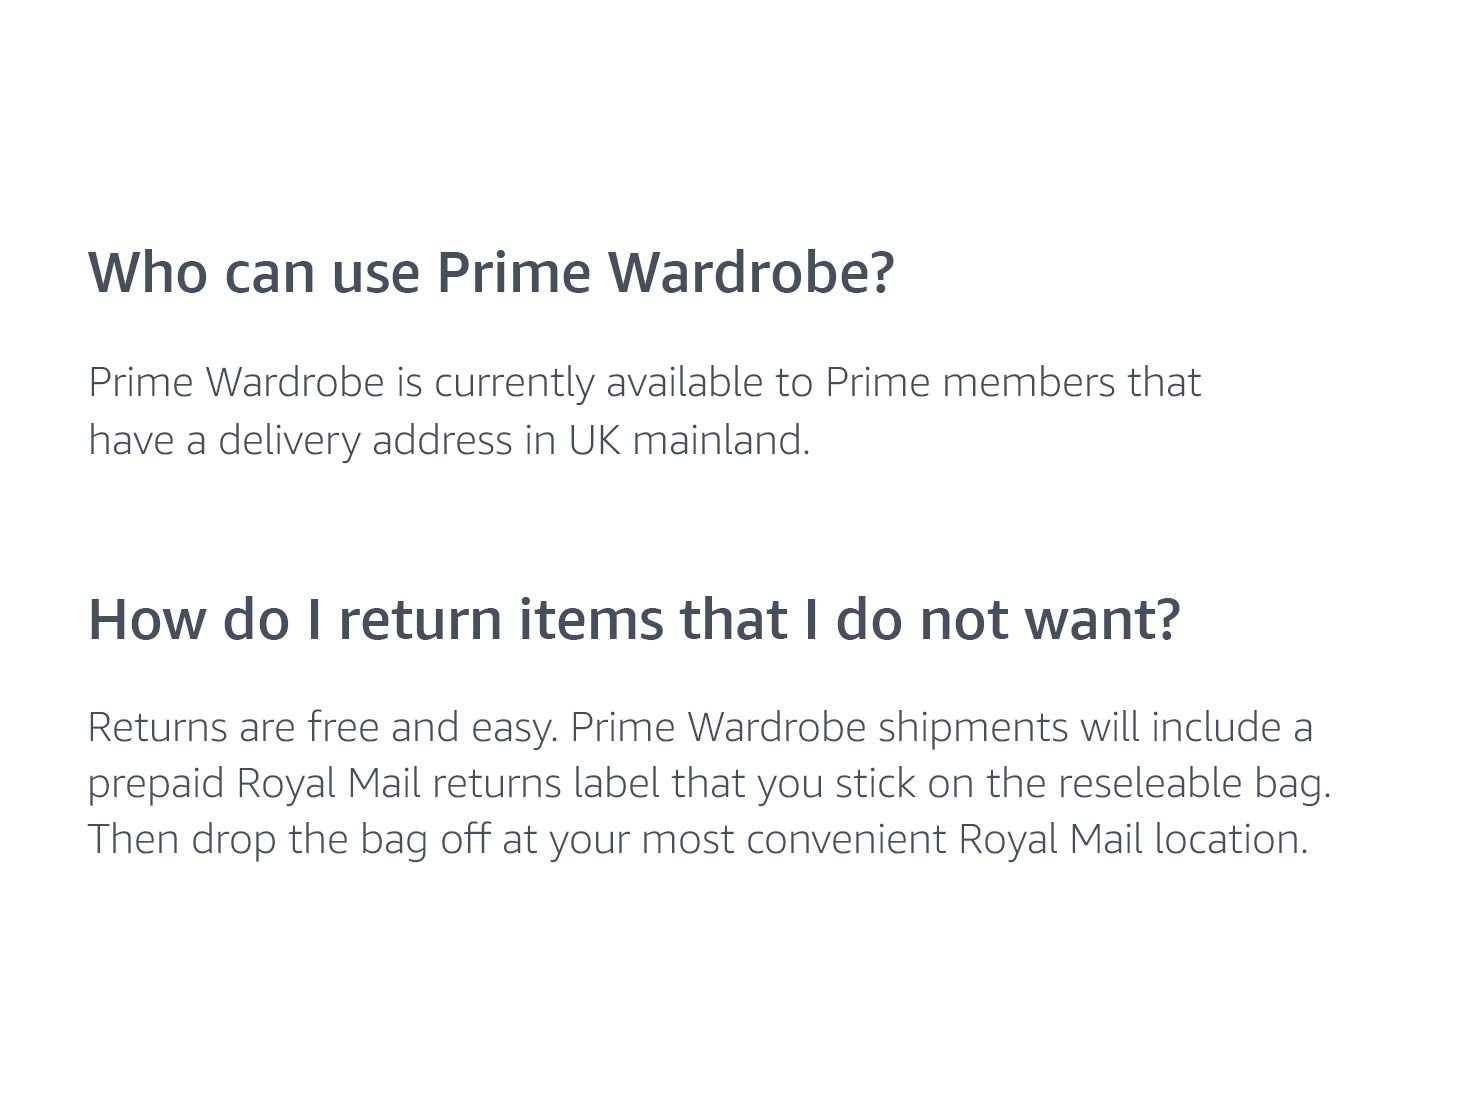 Who can use Prime Wardrobe? How do I return items?